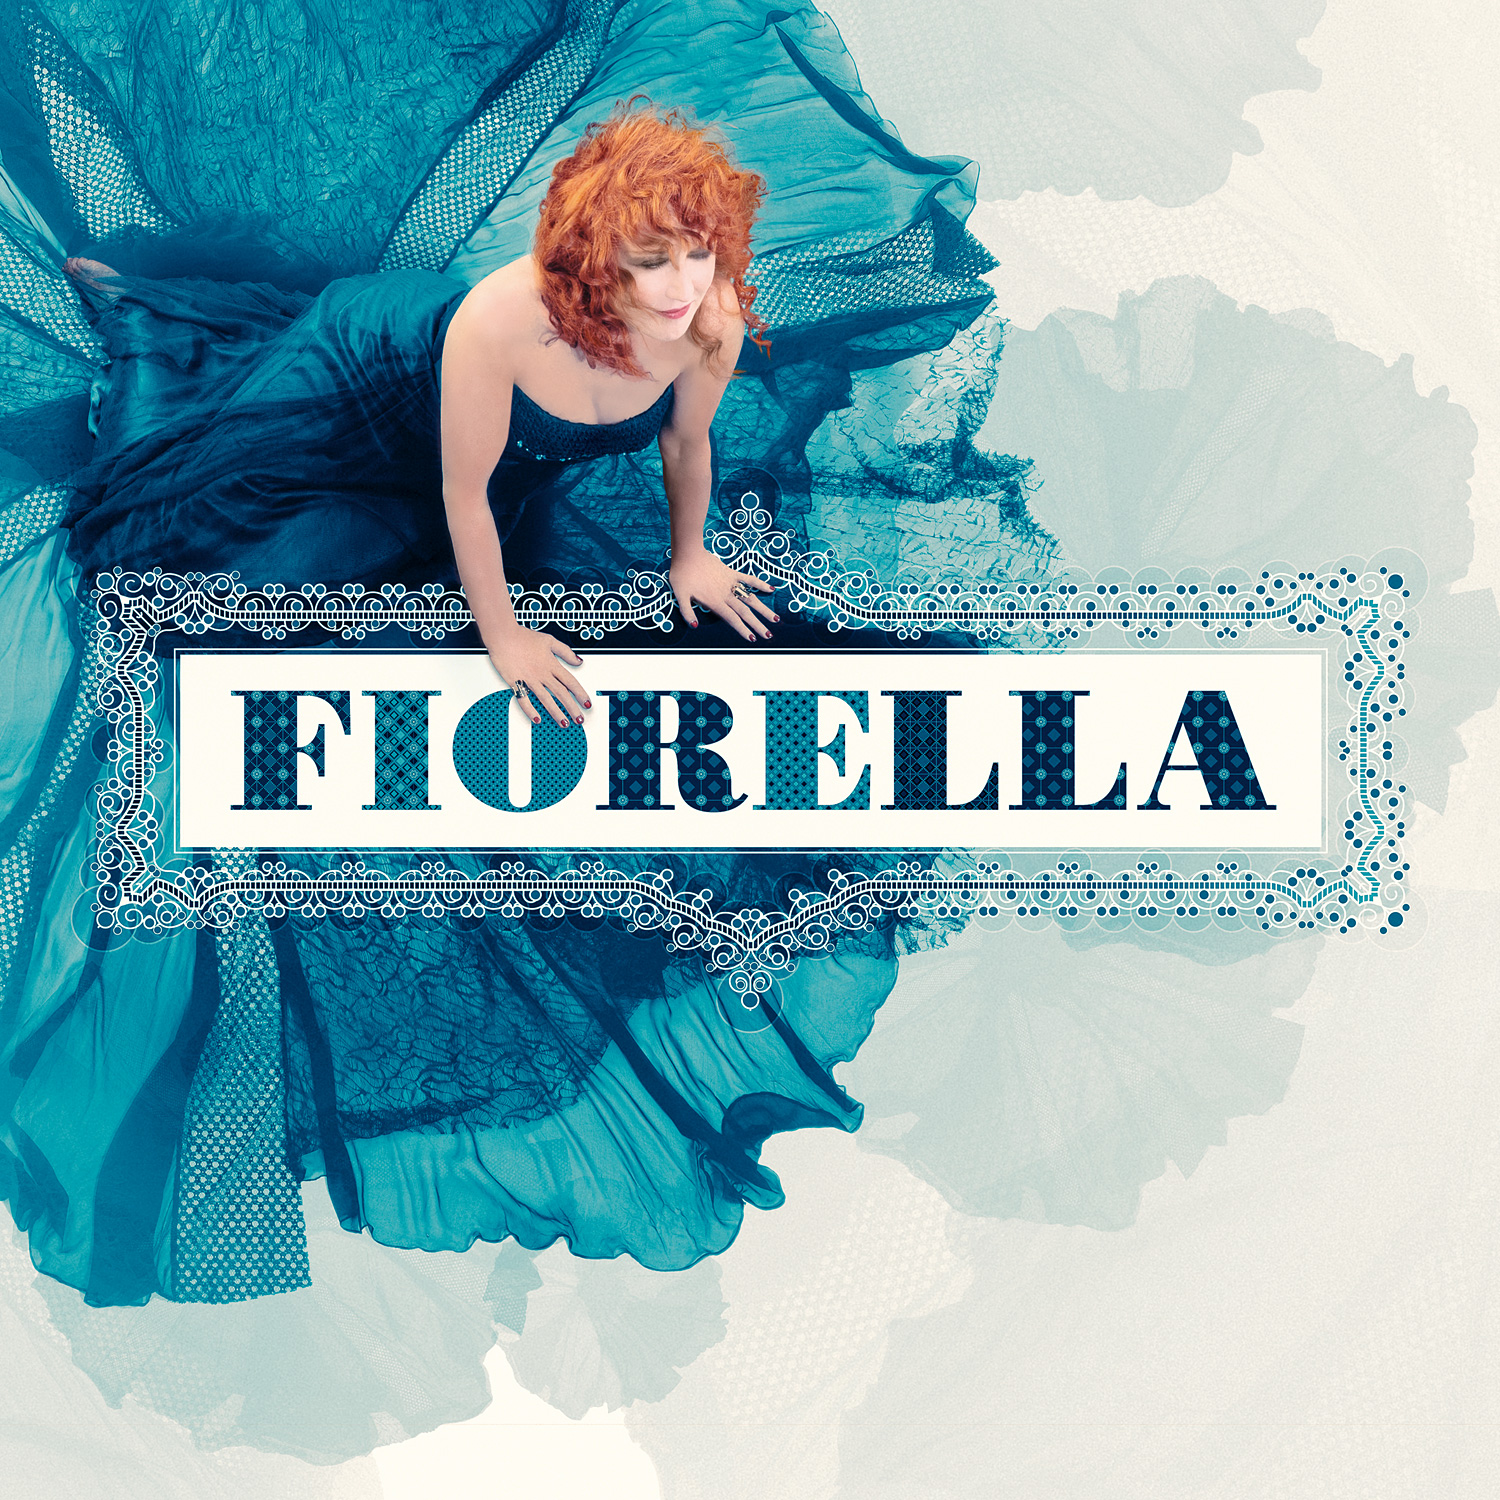 Fiorella_cover_album_quadrata_media